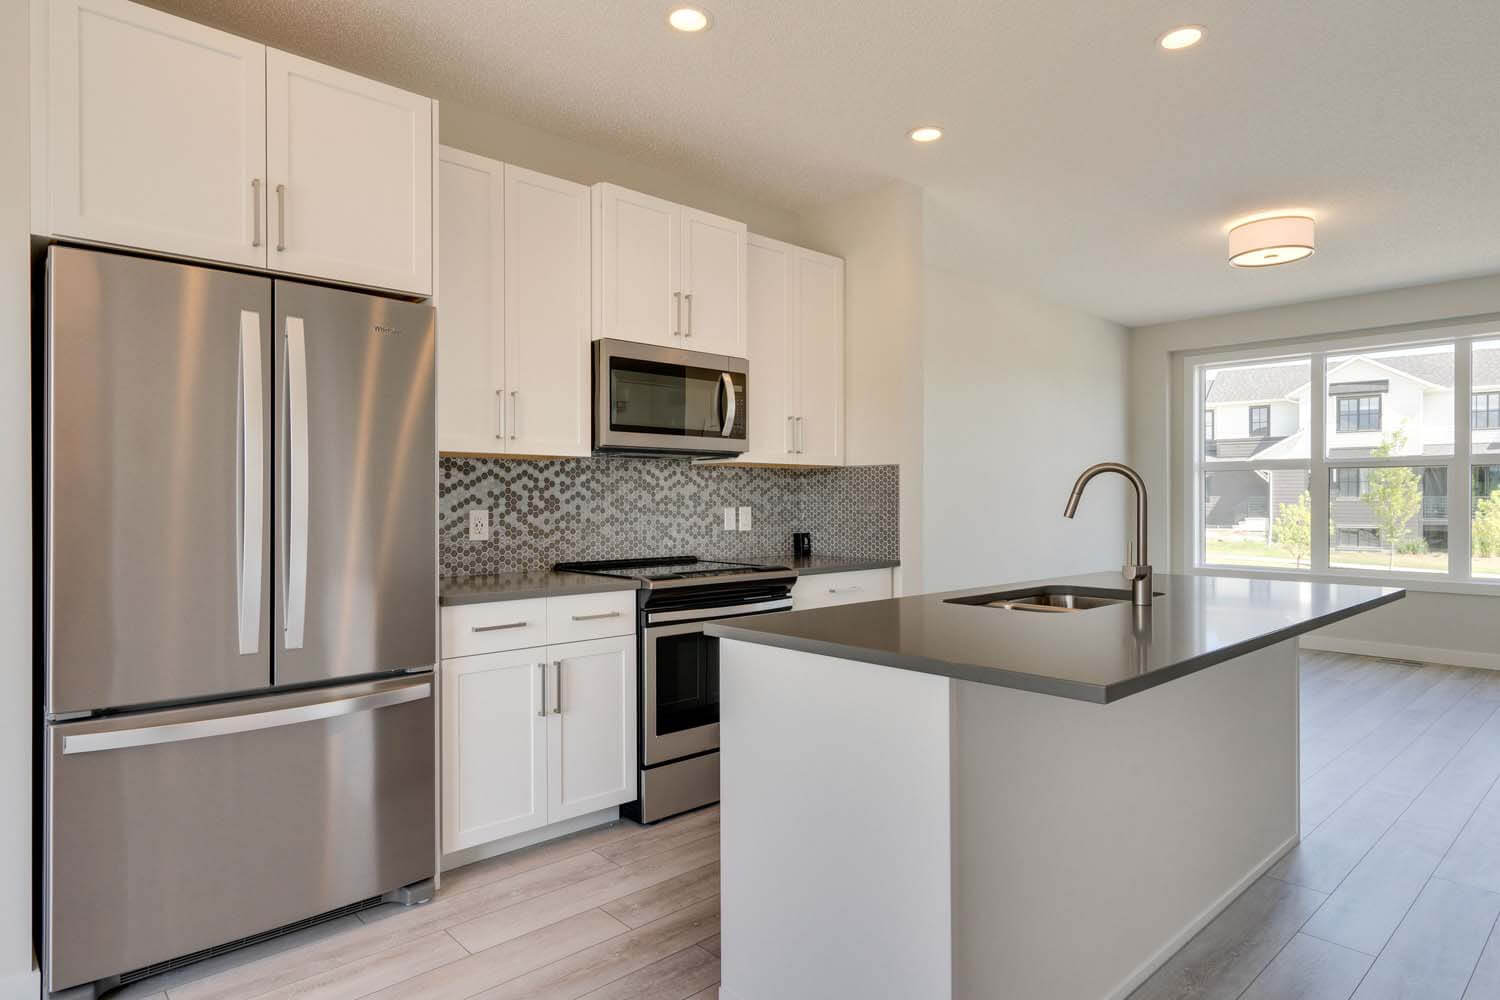 New Calgary Single Family Home Quick Possession Soho 1X in Walden, located at 13 Walcrest Gate Built By Cardel Homes Calgary